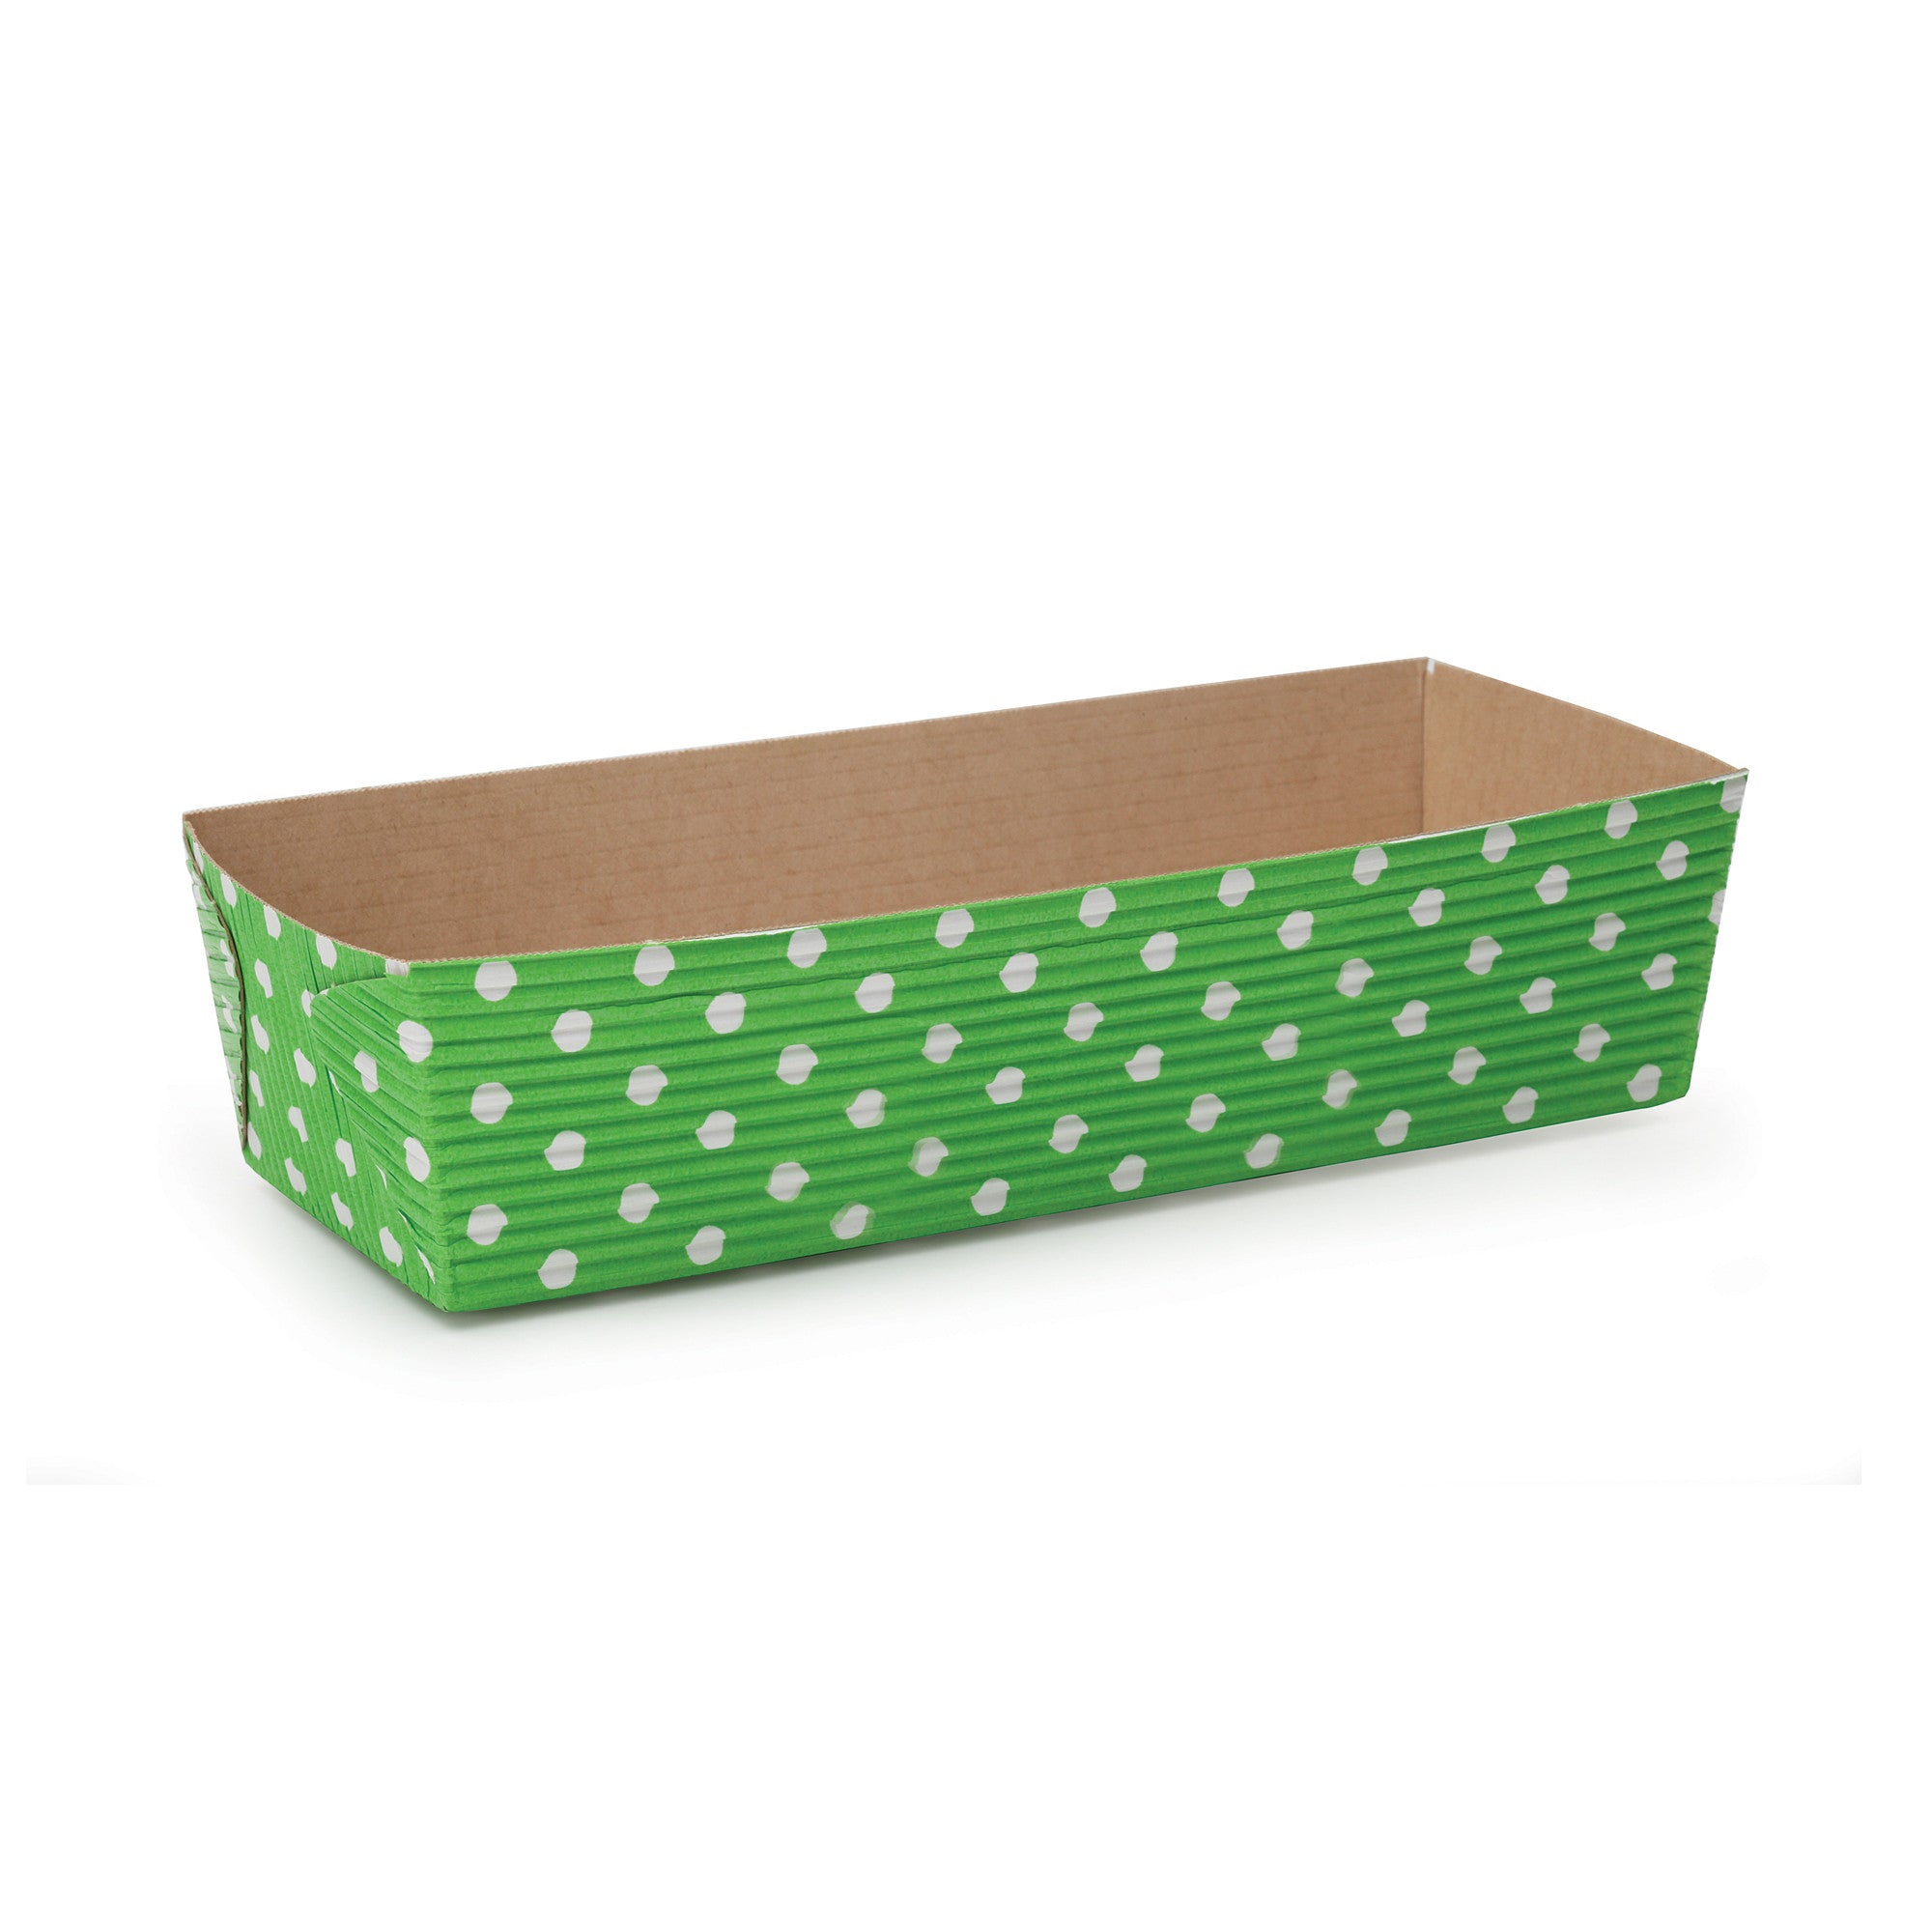 Rectangular Loaf Baking Pans, Green Dot - Paper Bake Shop